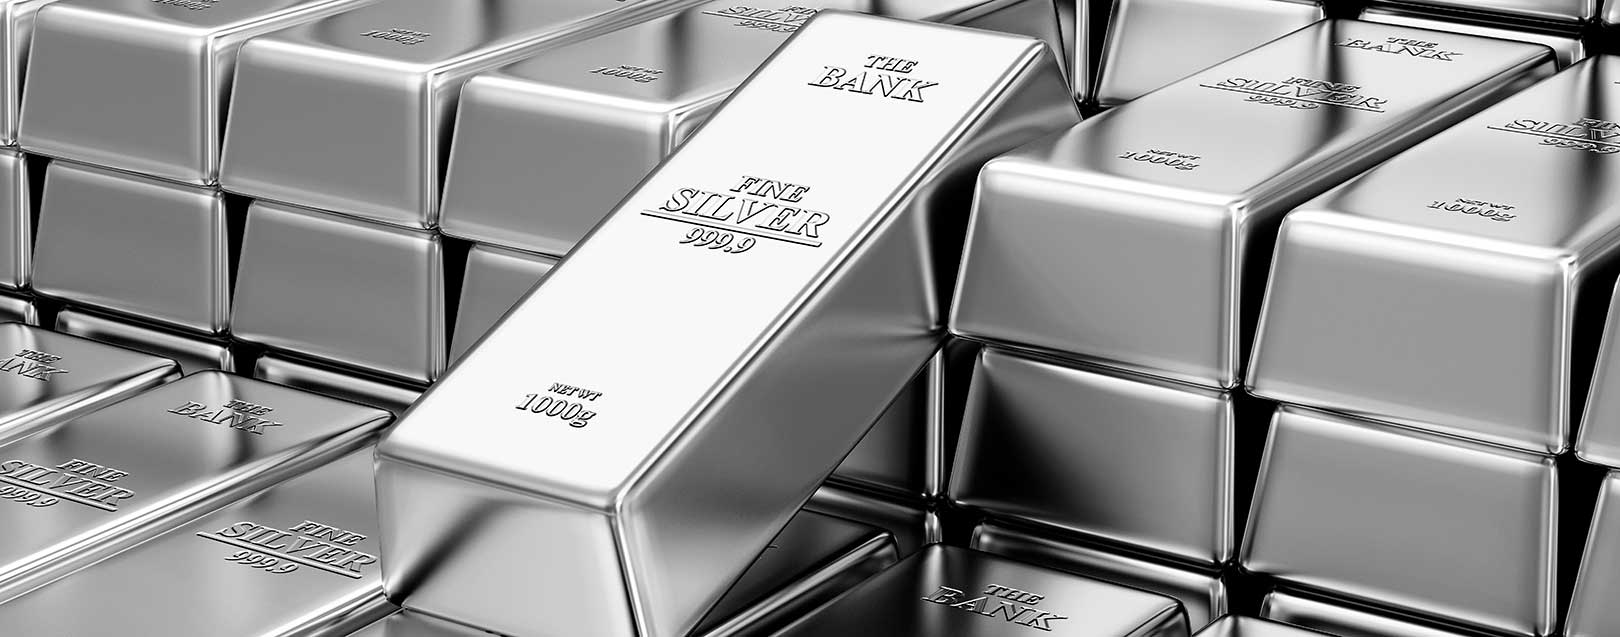 Silver bar demand drops due to demonetisation, high prices